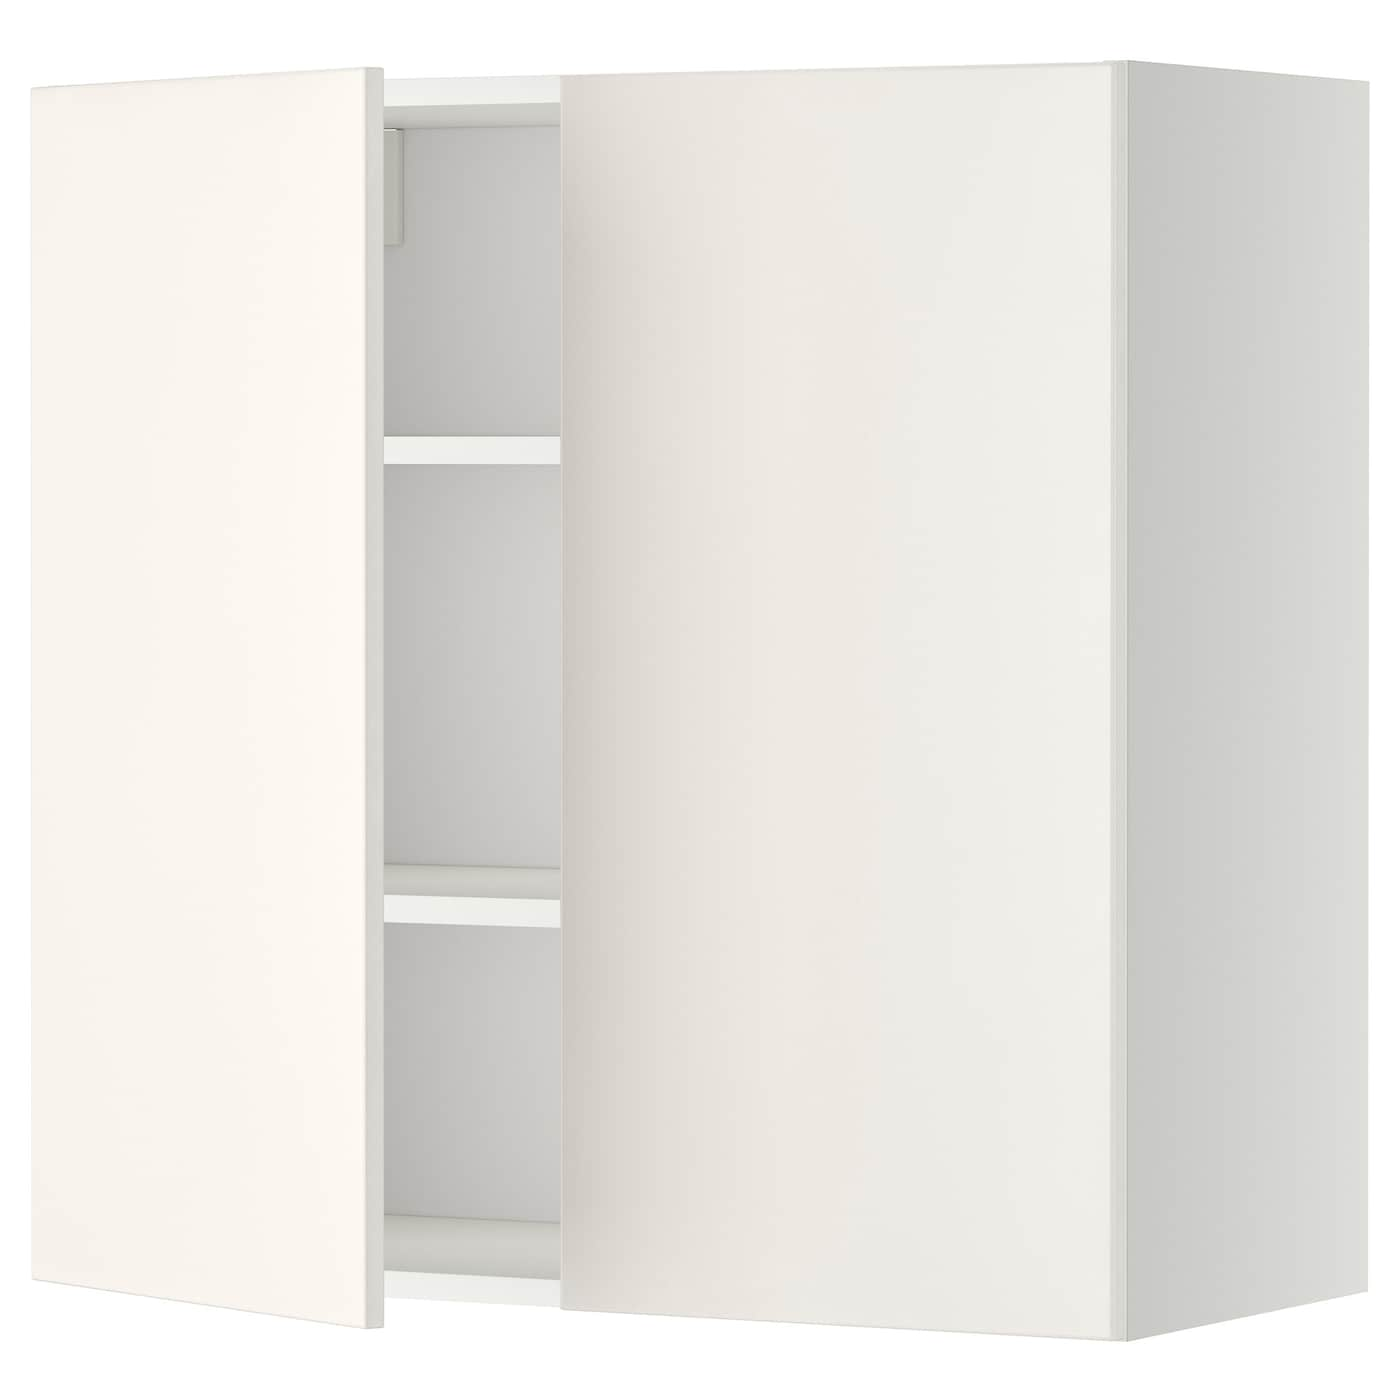 Metod Wall Cabinet With Shelves 2 Doors White Veddinge White 80×80 Cm Ikea